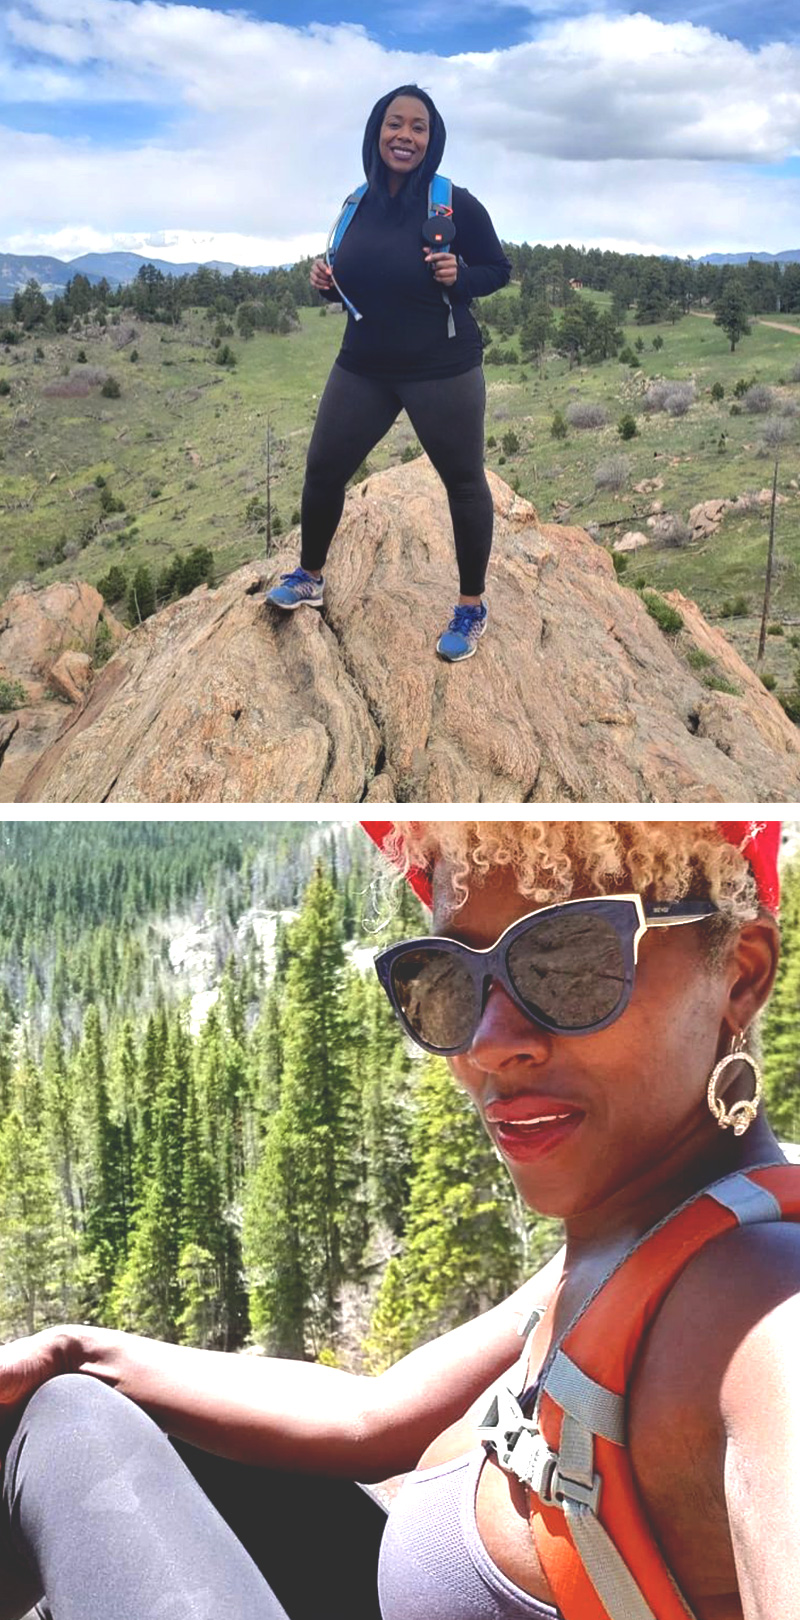 Two stacked photos of two Black women outdoors. The top photo shows a Black woman wearing black hoodie, smiling and standing on a boulder. The bottom photo is of a Black woman with short blond curly hair, taking a selfie with pine trees in the distance